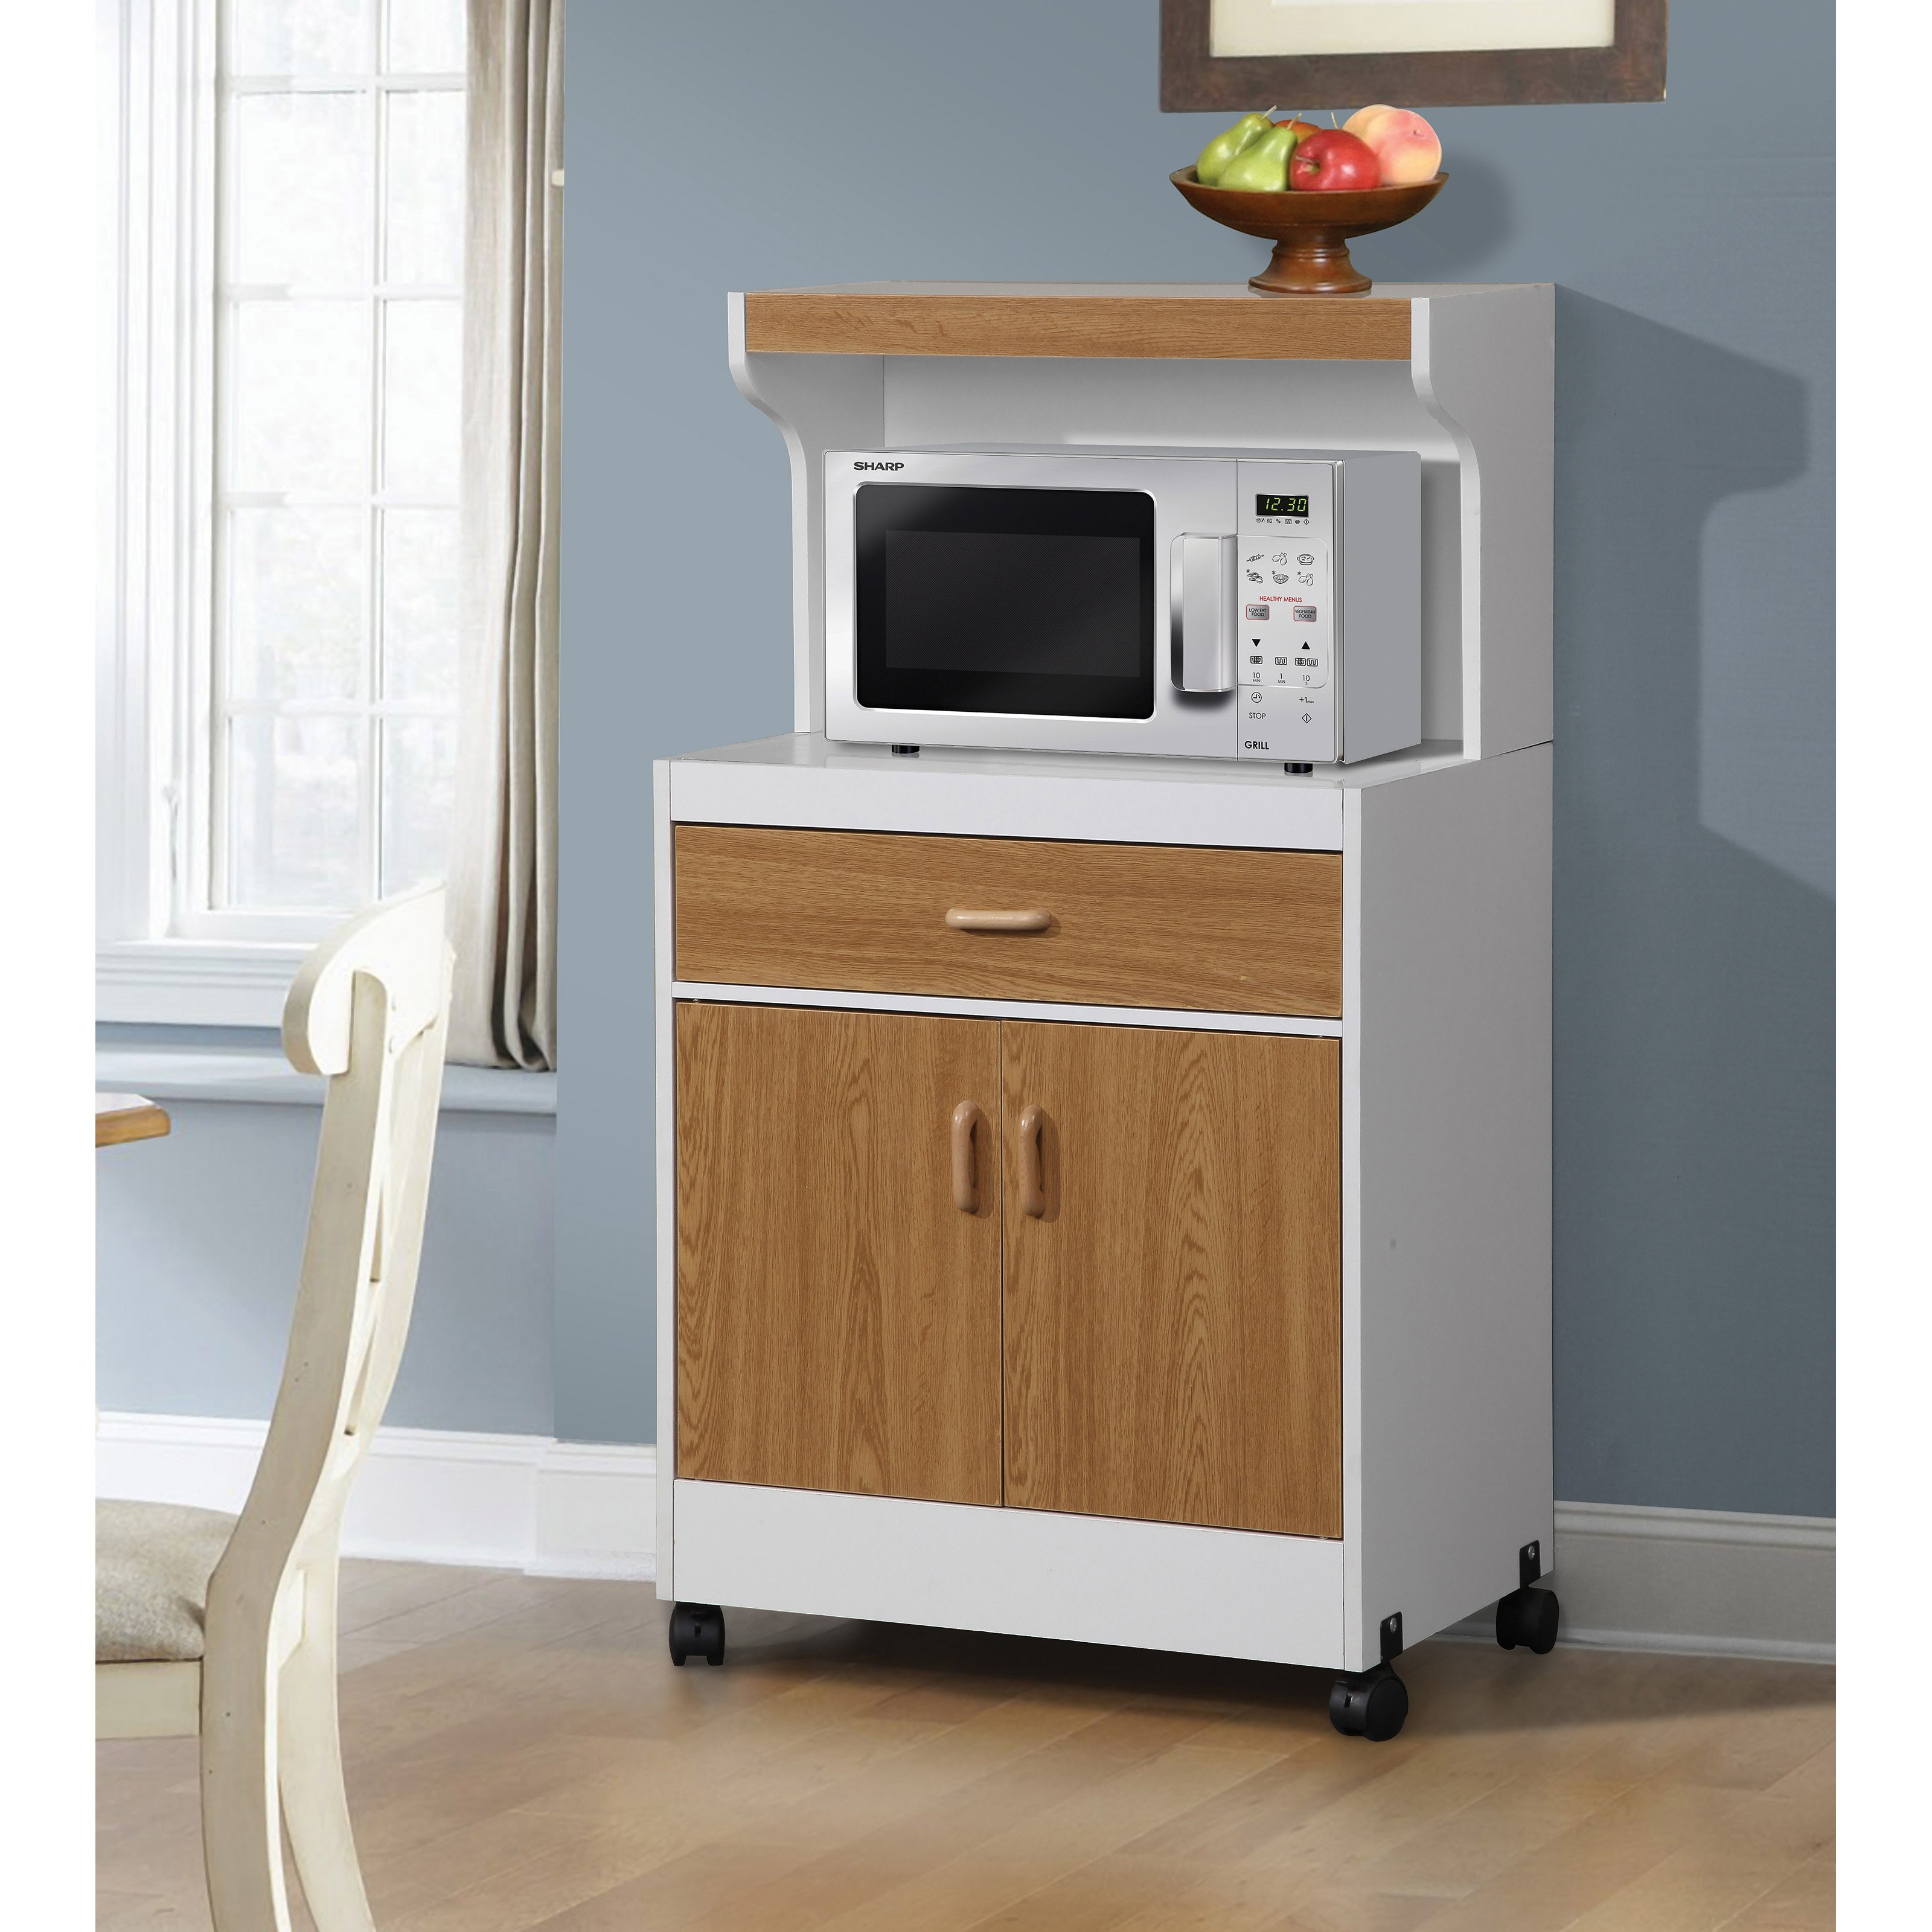 Home Source Portable Microwave Kitchen Cabinet